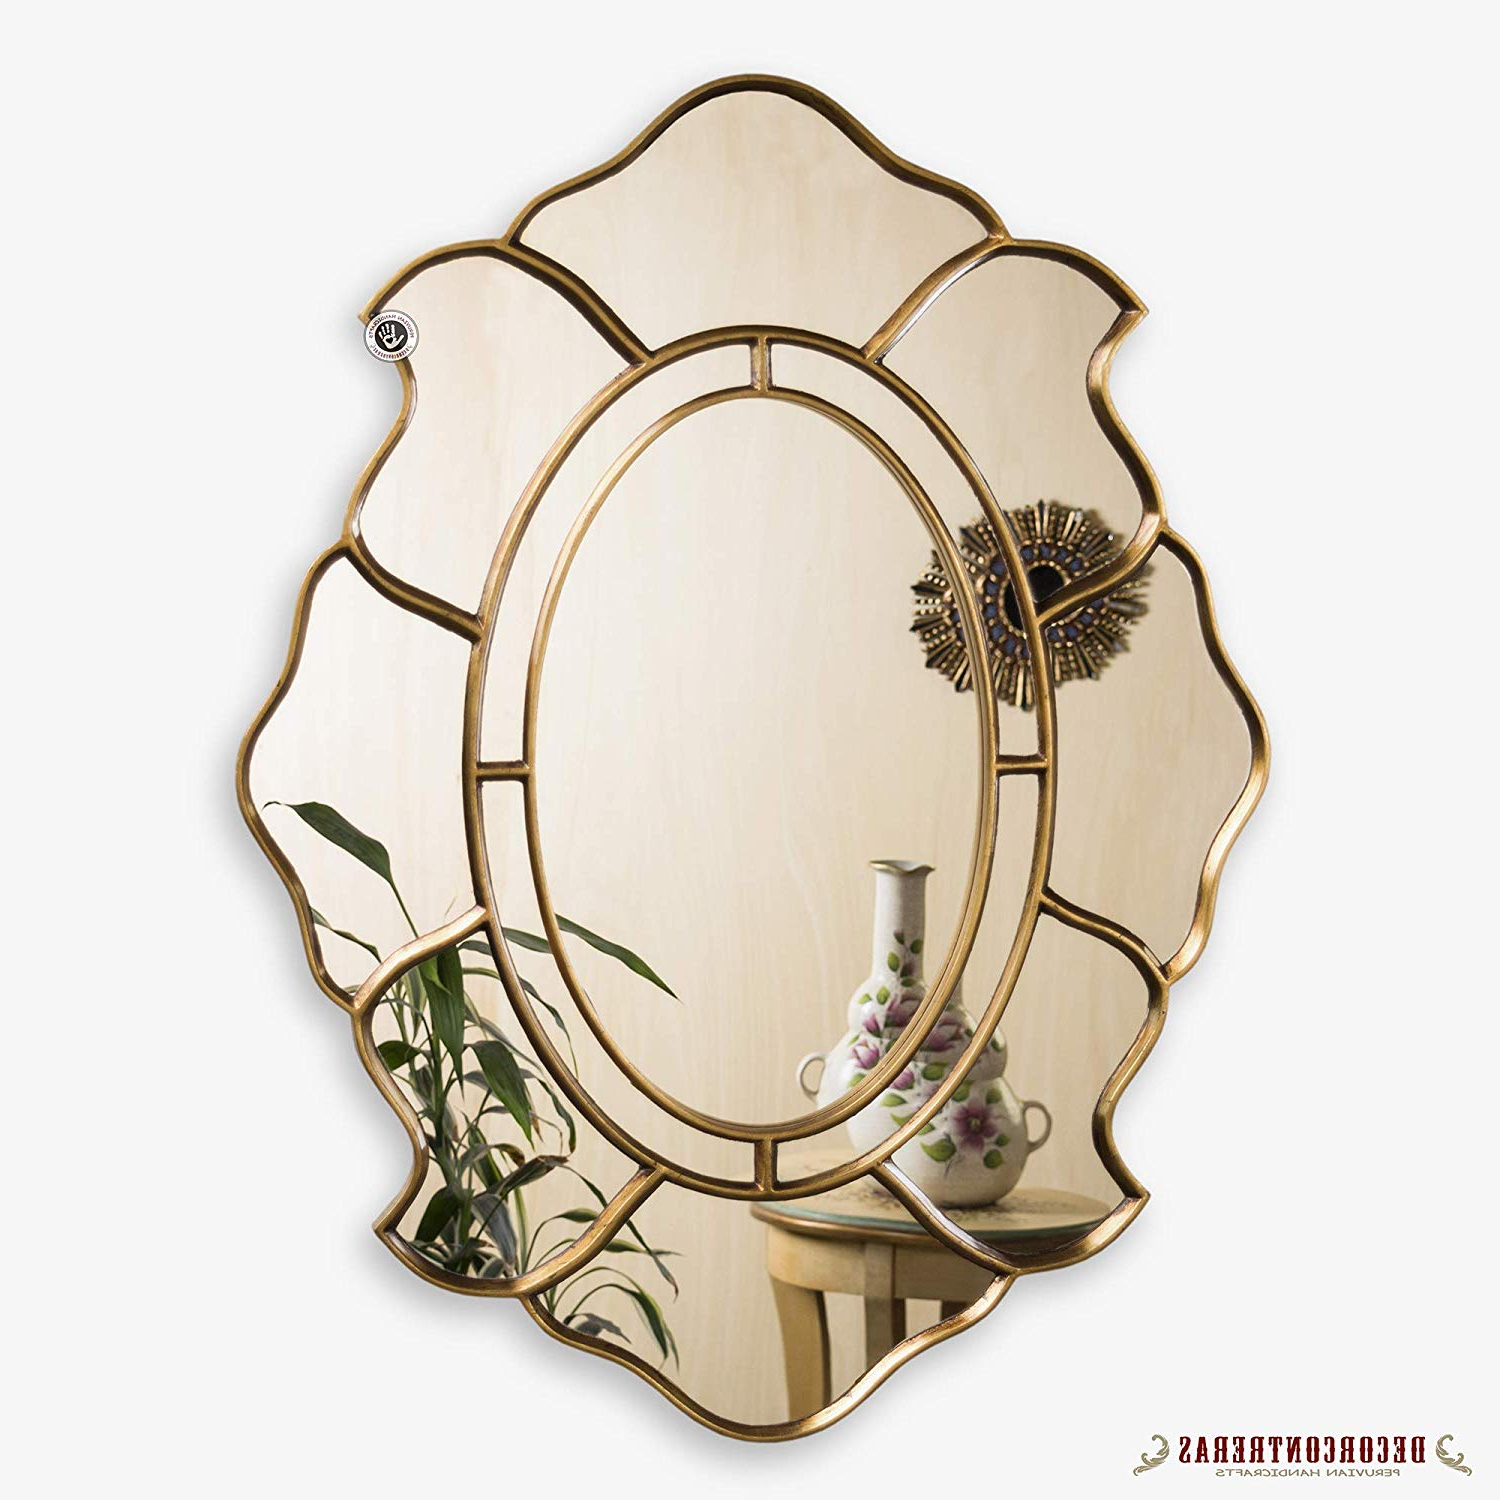 Newest Accent Mirrors Within Amazon: Gold Oval Accent Wall Mirror, Decorative Oval Mirror For (View 15 of 20)